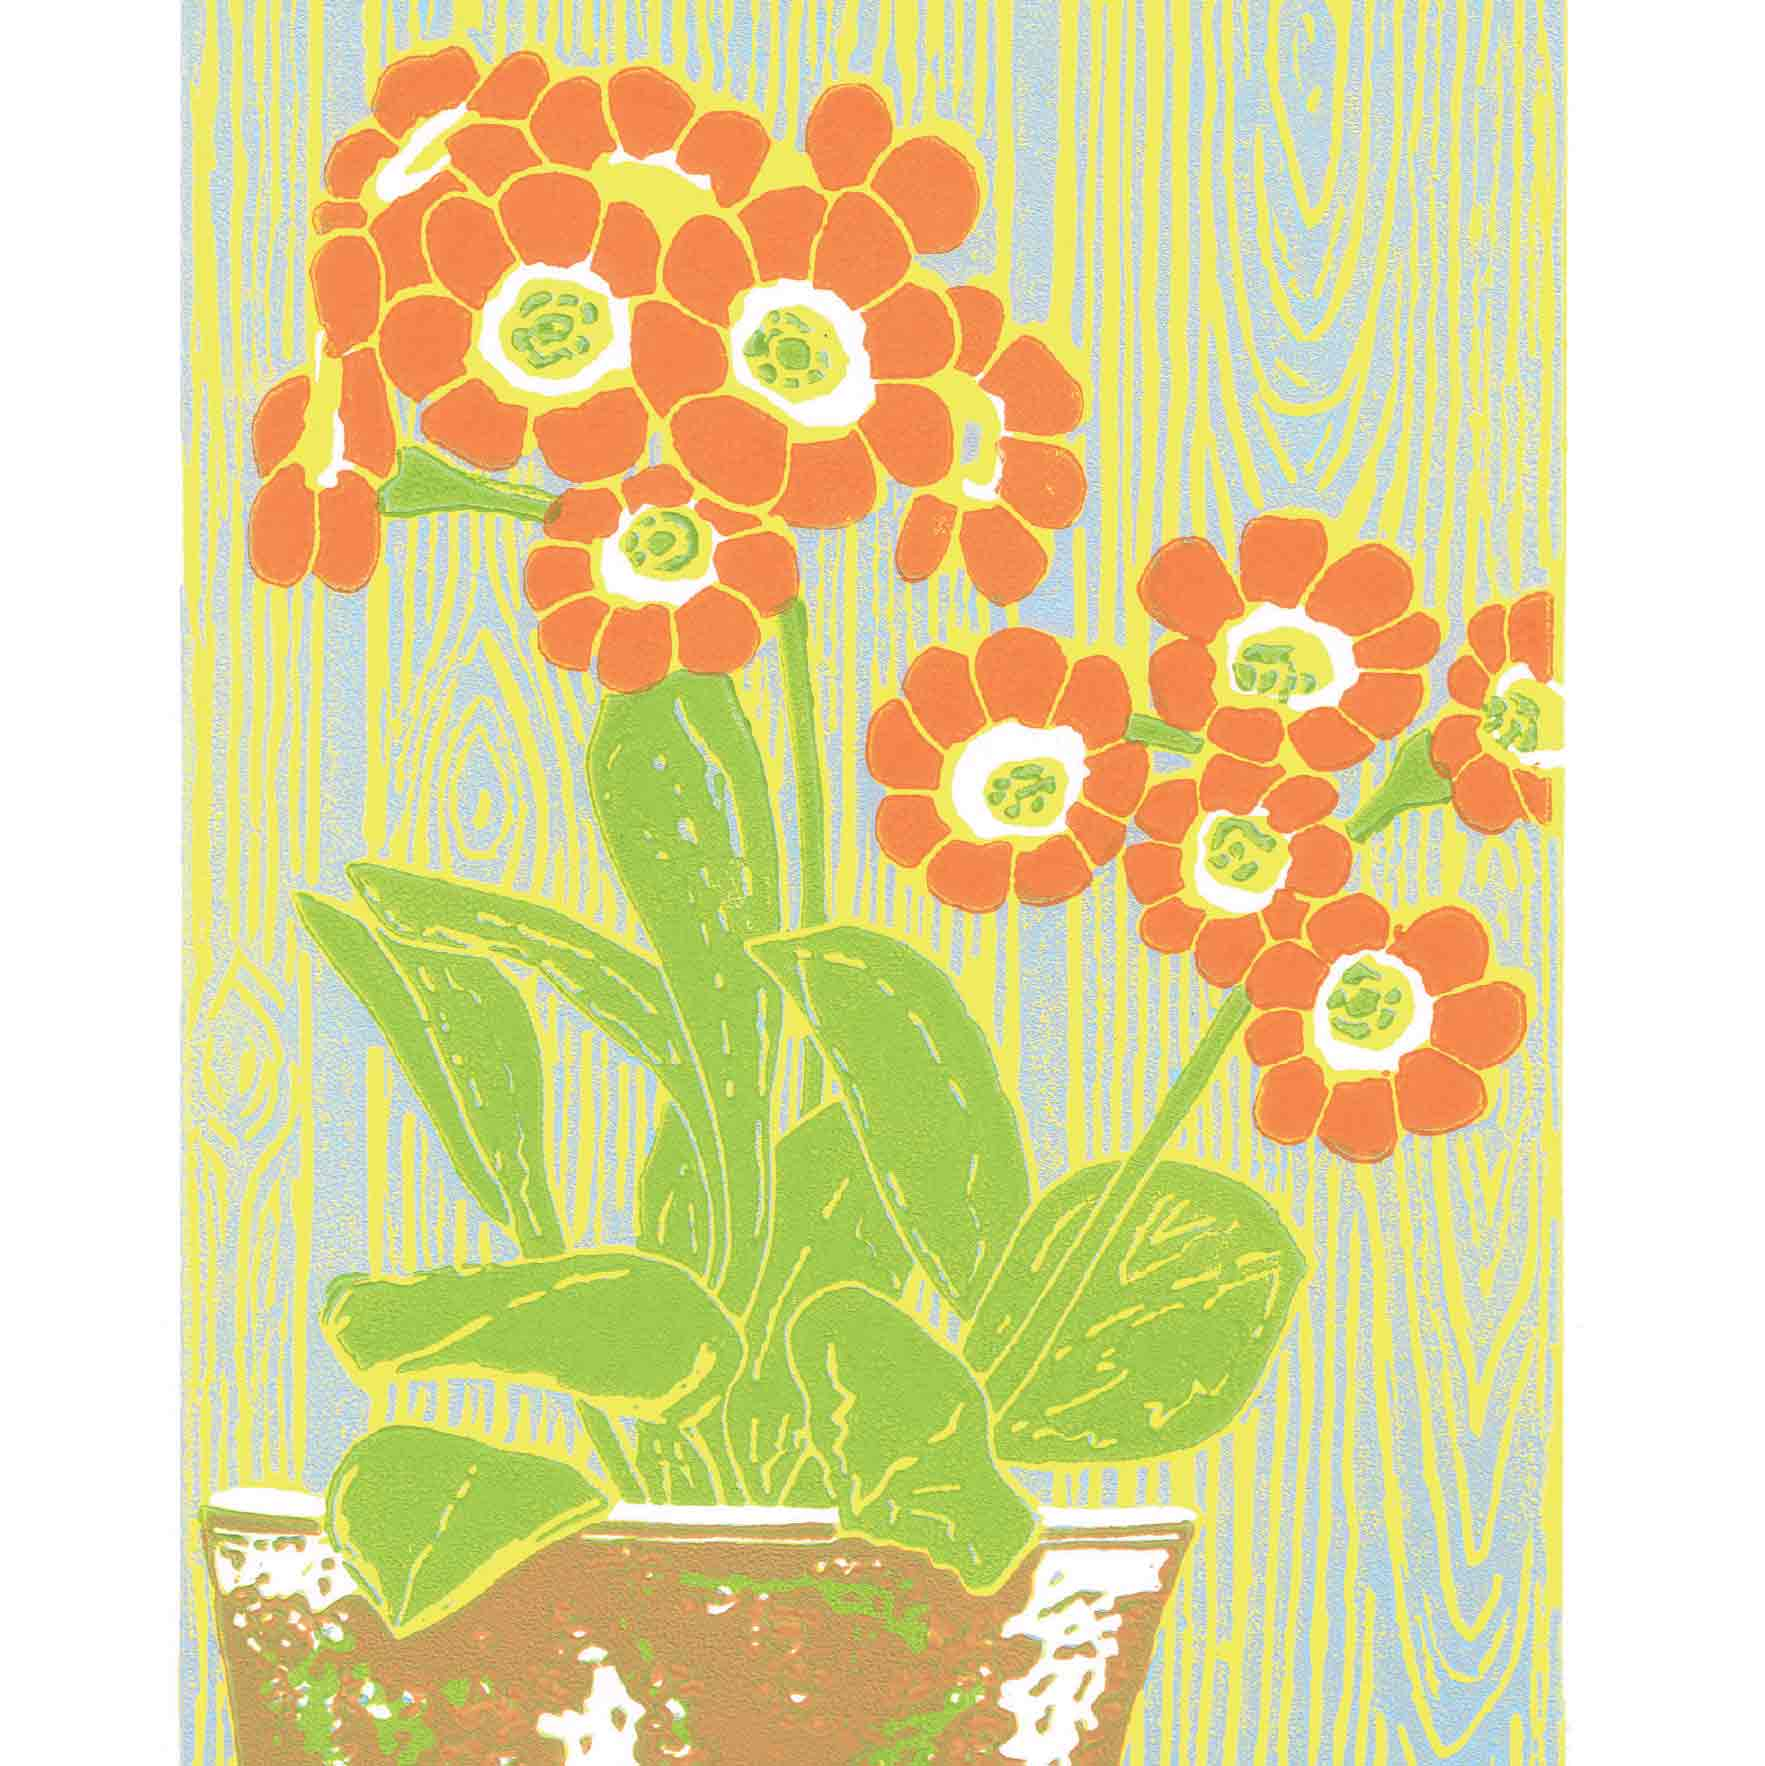 Art Greeting Card by Heather Ramskill, Linocut, Dusky Orange Auricula, Linocut, Orange auricula in pot